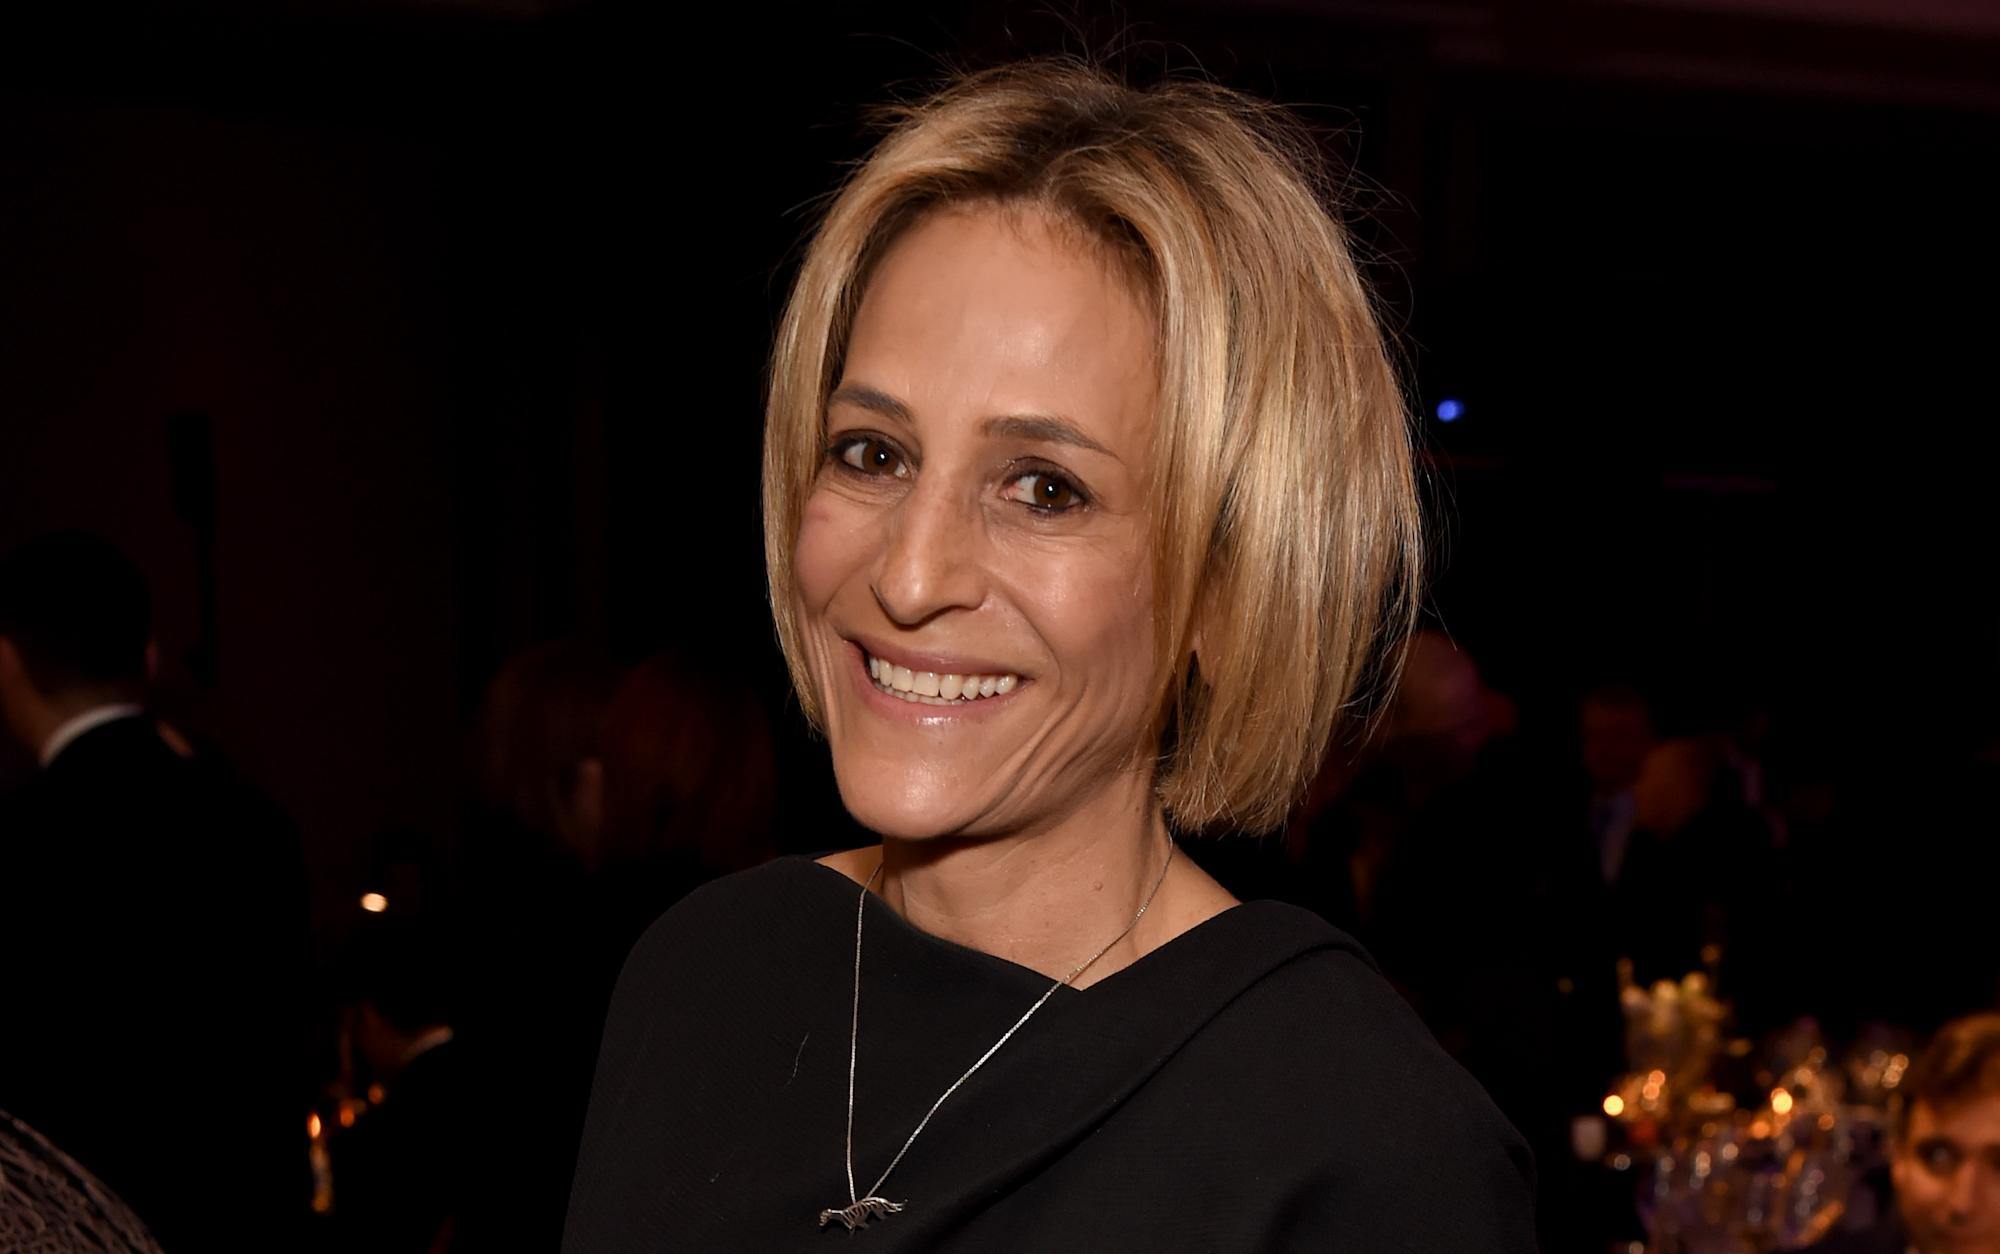 Emily Maitlis facing further BBC rebuke after saying she doesn't regret Dominic Cummings remarks